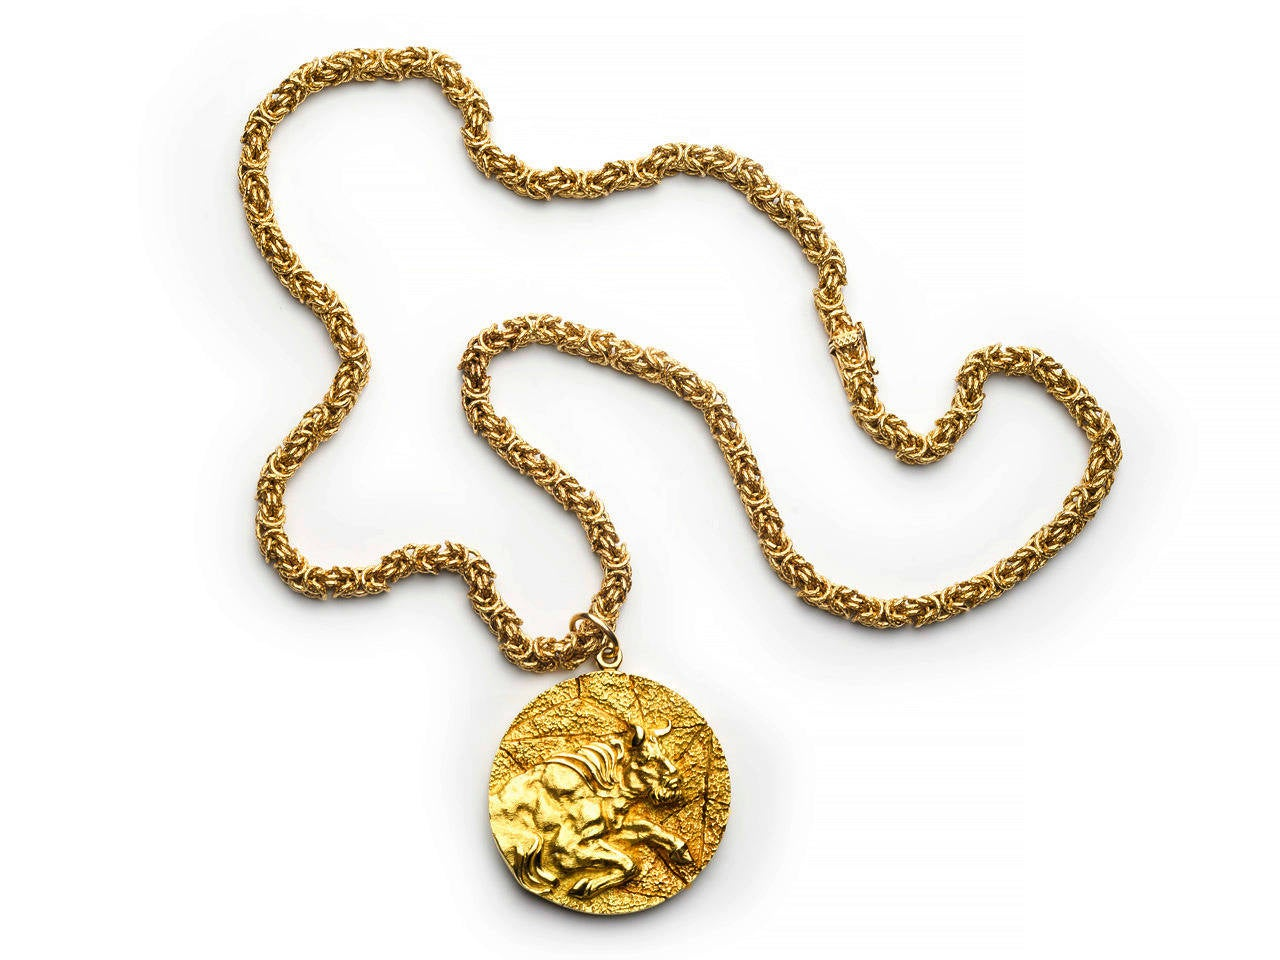 adc6c1054 Tiffany & Co. Gold Taurus Pendant Necklace For Sale. 18k gold woven chain  suspending a circular embossed pendant with Taurus the bull in high relief